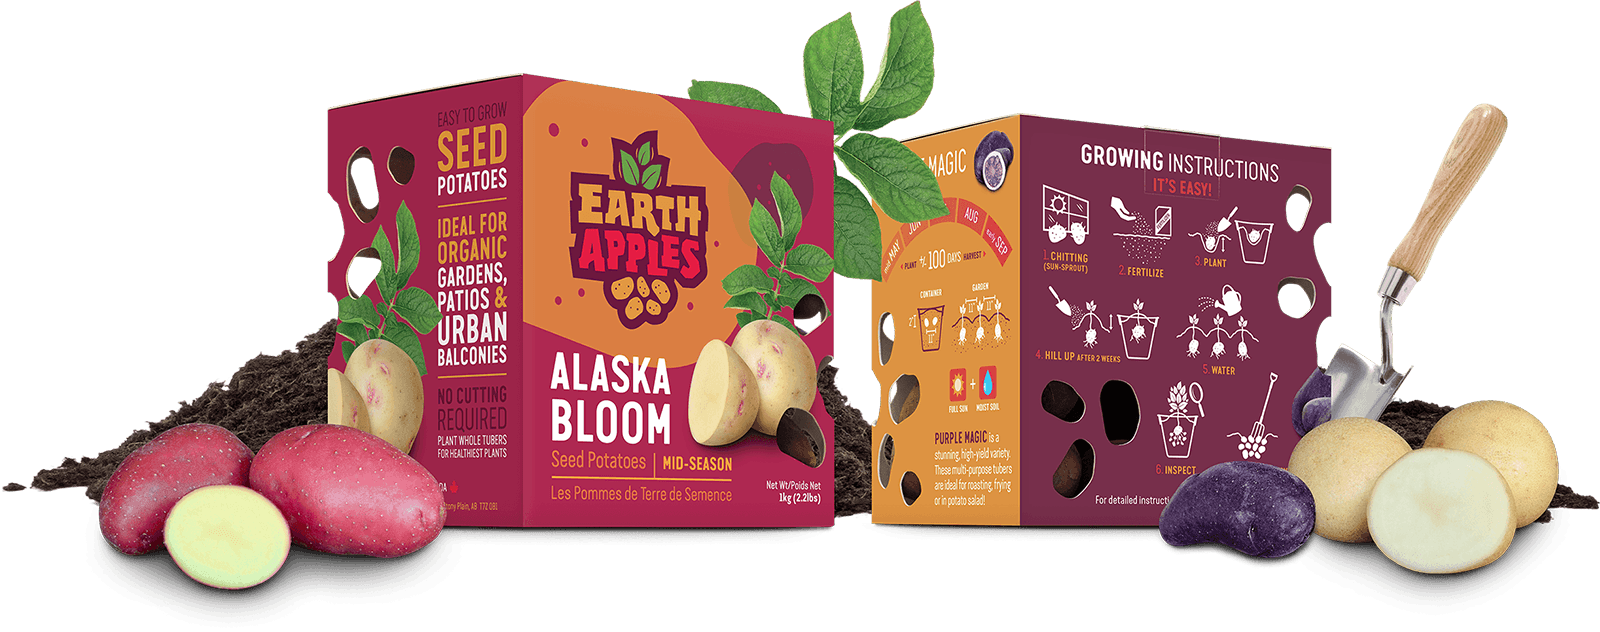 Creative, fun and playful potatoe package design for Earth Apples